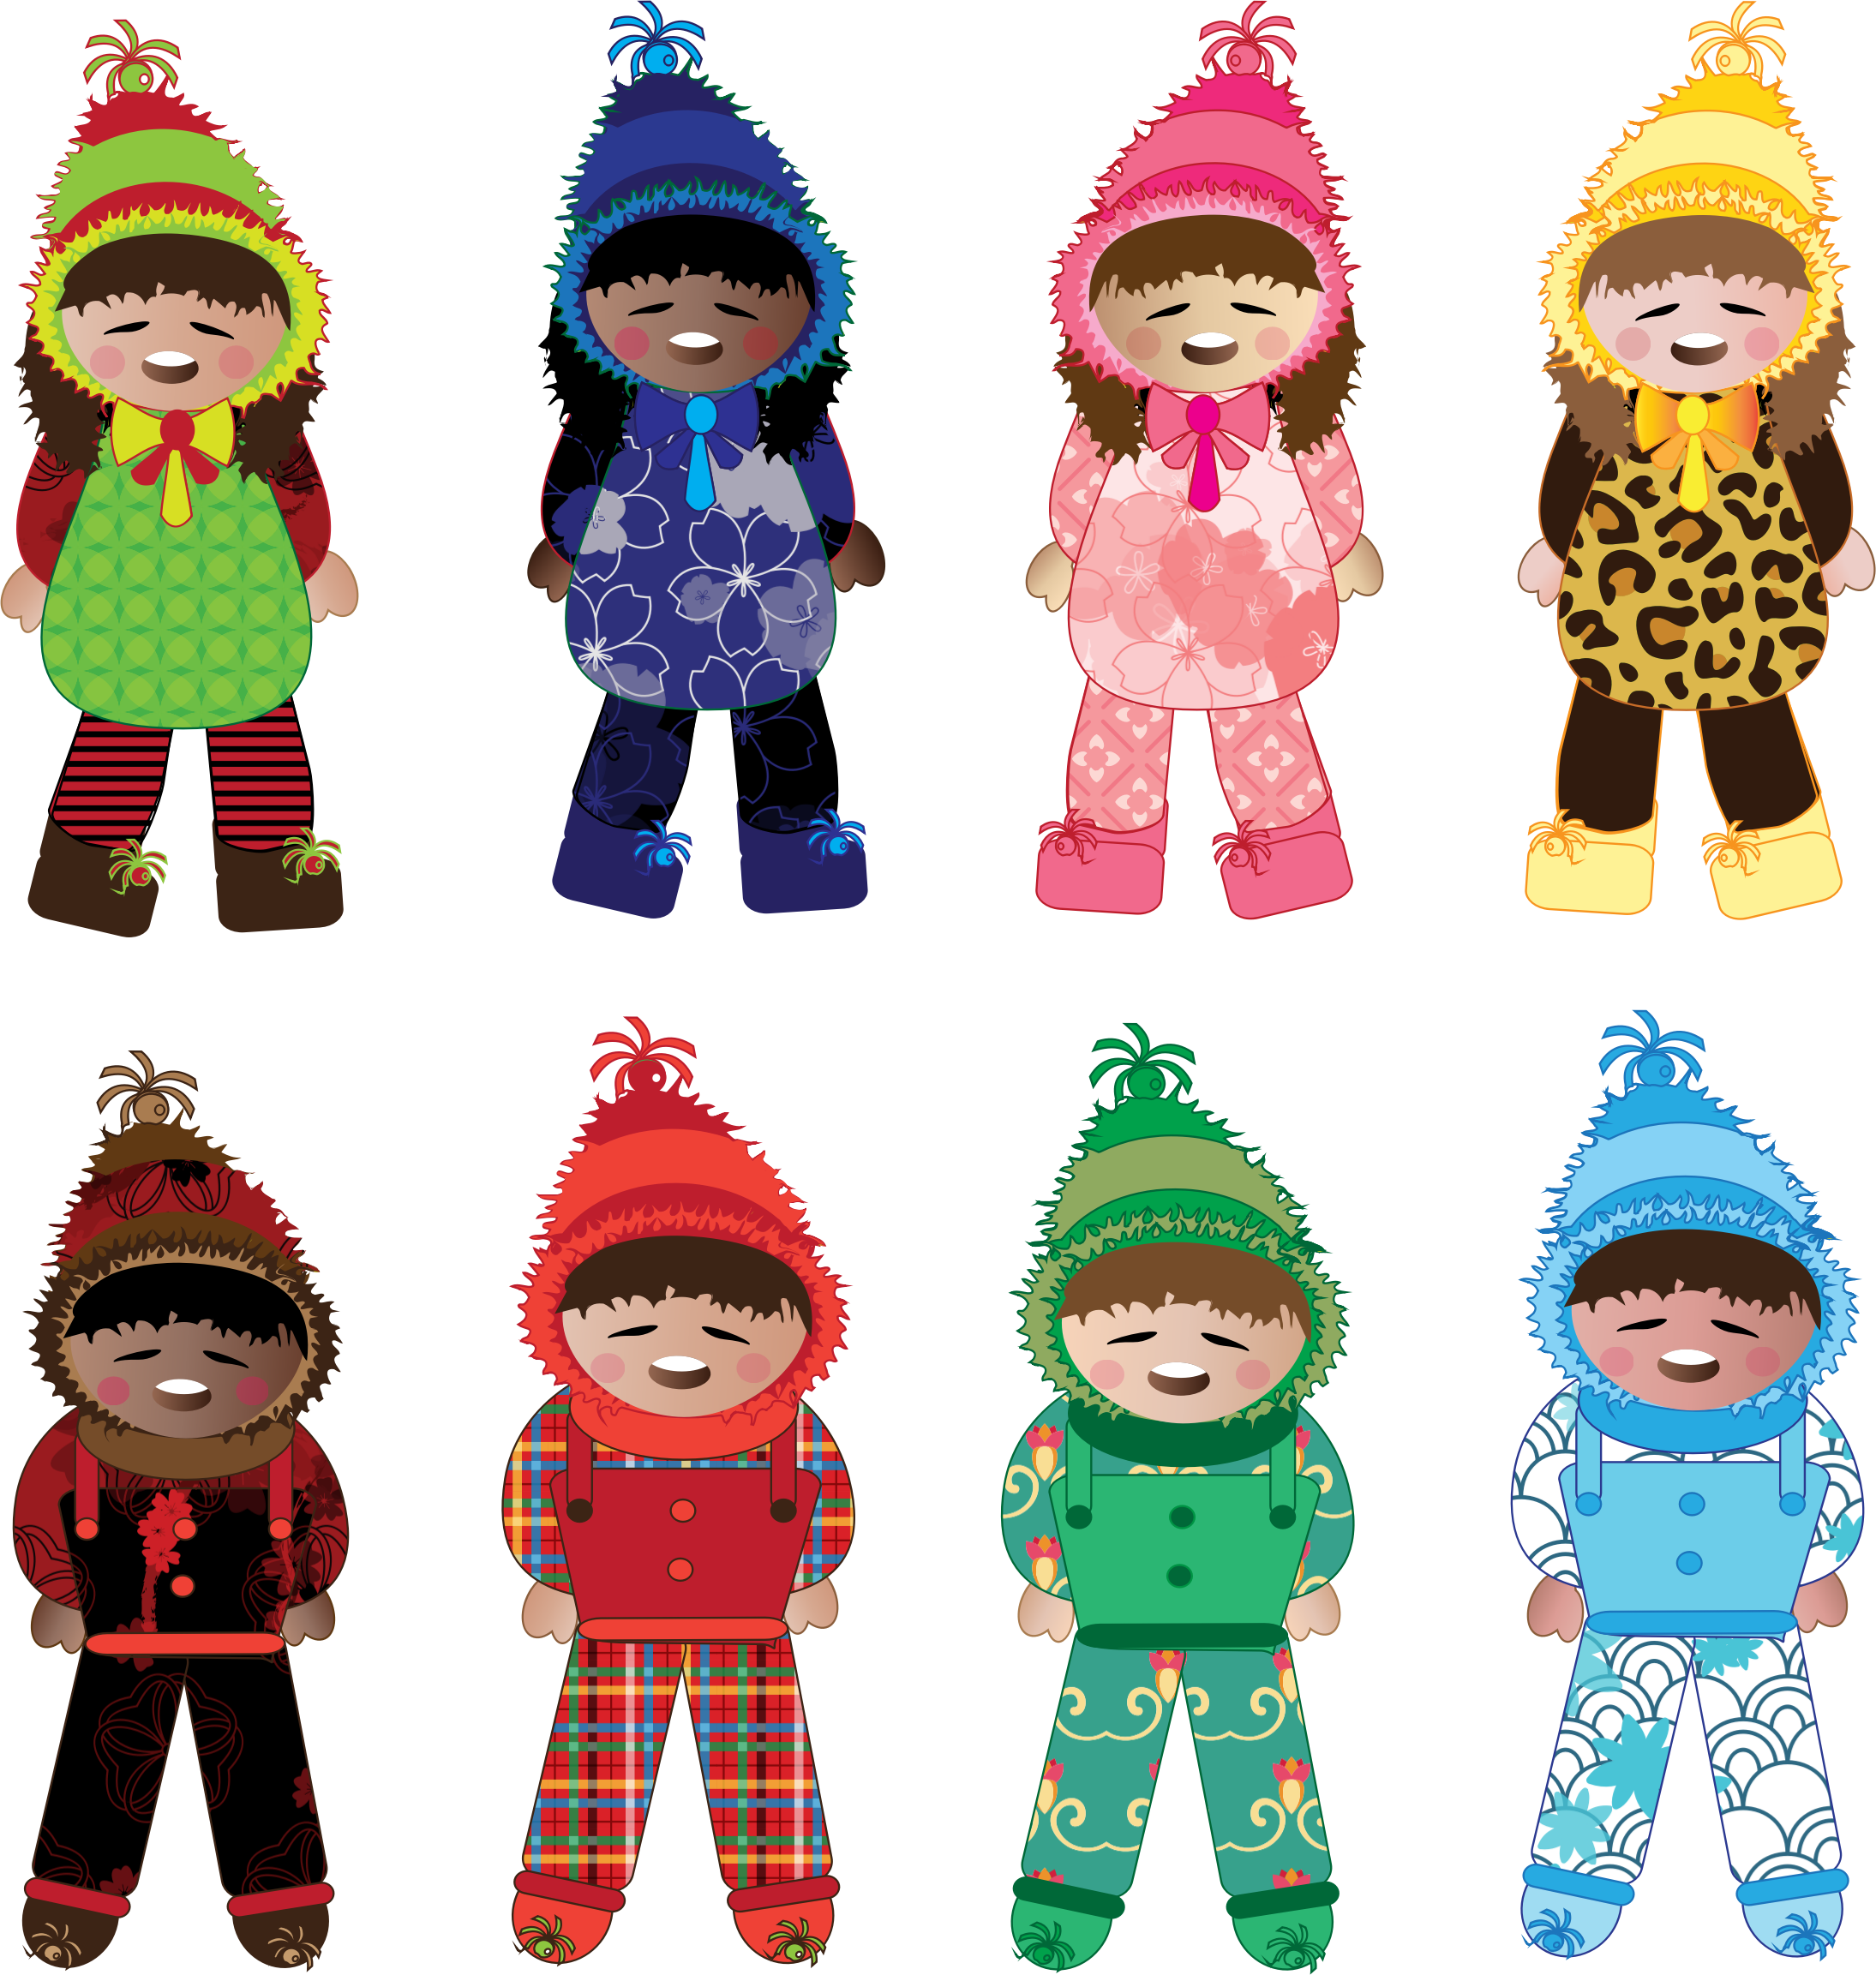 Wednesday clipart winter, Wednesday winter Transparent FREE.